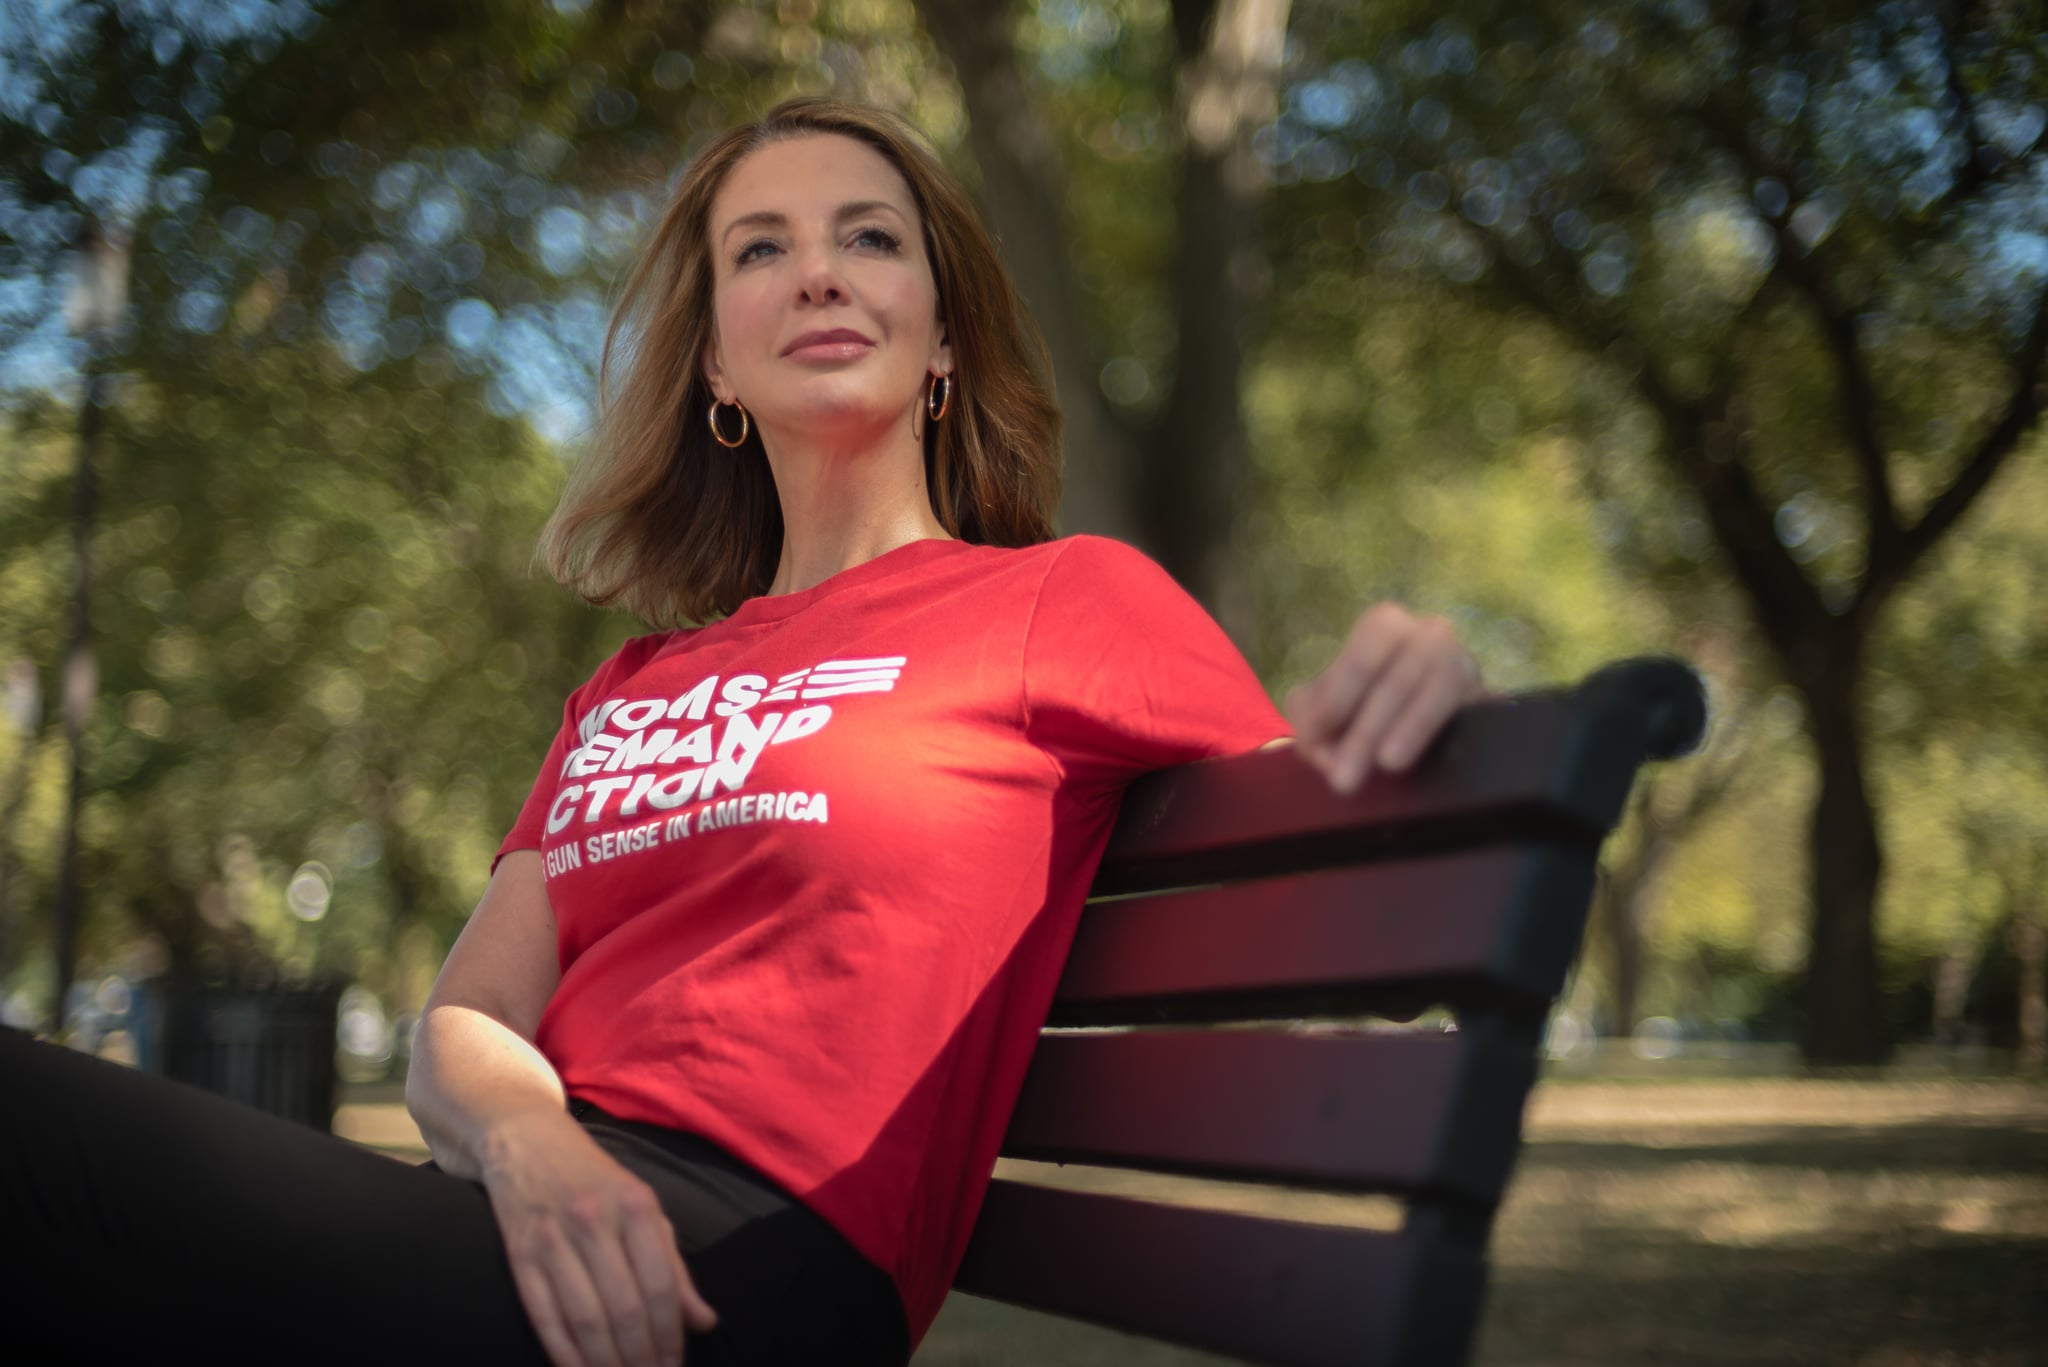 WASHINGTON, DC -- SEPTEMBER 25: Shannon Watts is the founder of the gun safety group, Moms Demand Action, the nations largest grassroots organisation fighting to end gun violence.  For Just Asking Profile. (photo by Andre Chung for The Washington Post via Getty Images)